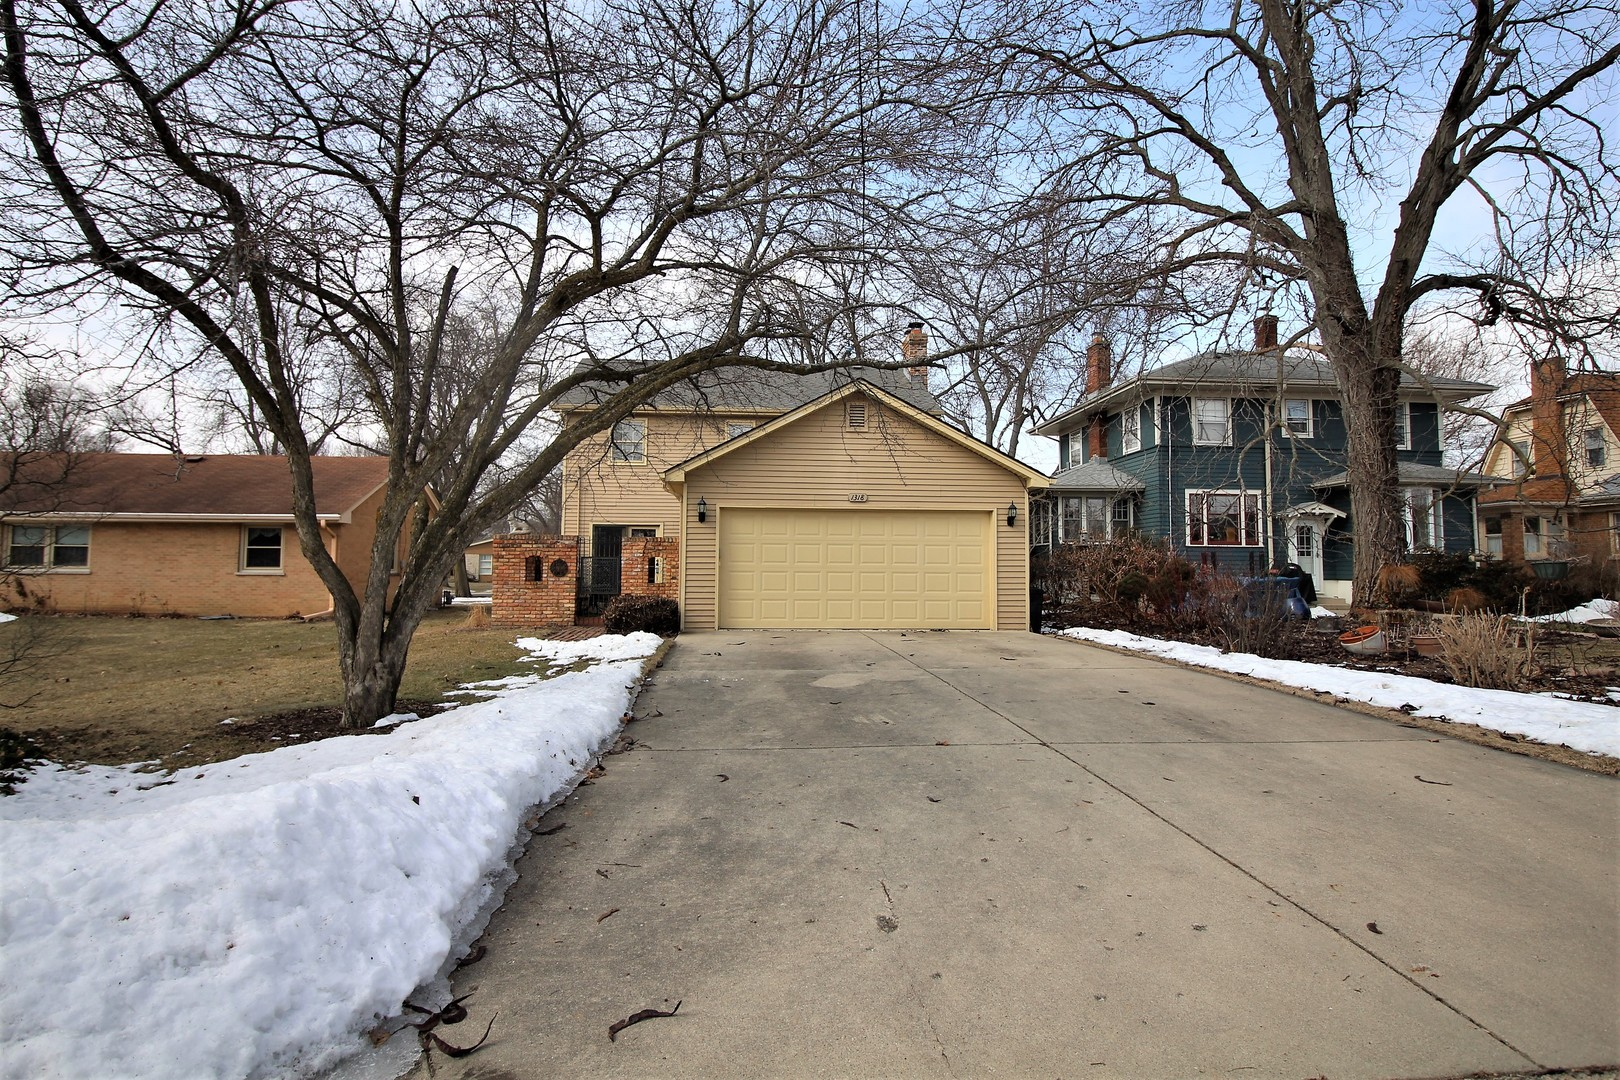 1318 South 3rd, ST. CHARLES, Illinois, 60174